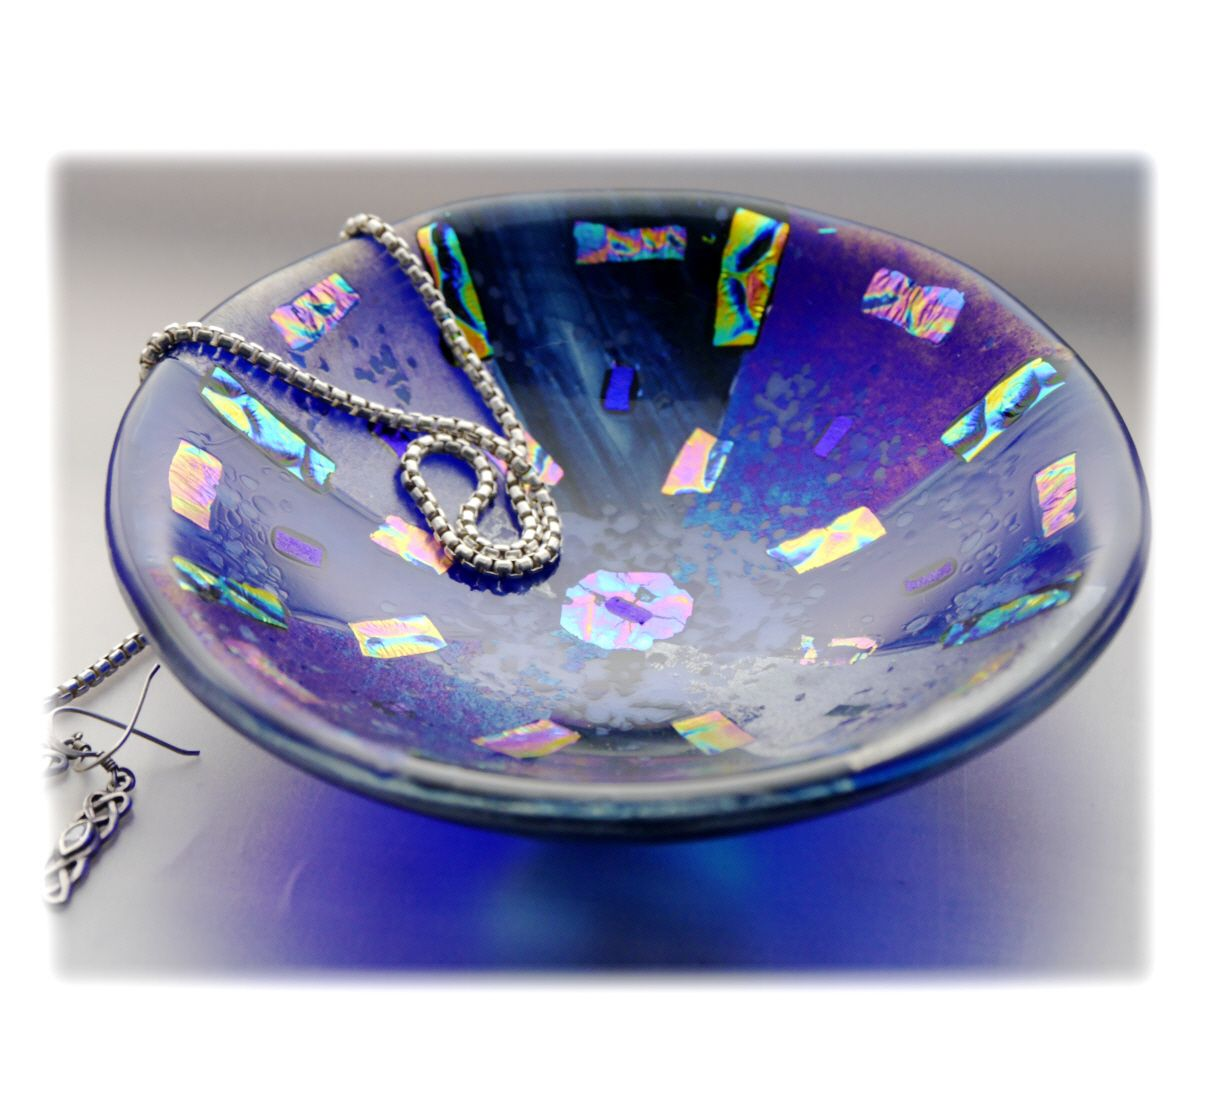 12.5cm Round Blue Dichroic Bowl FUSED 036 #1711 FREE 16.00